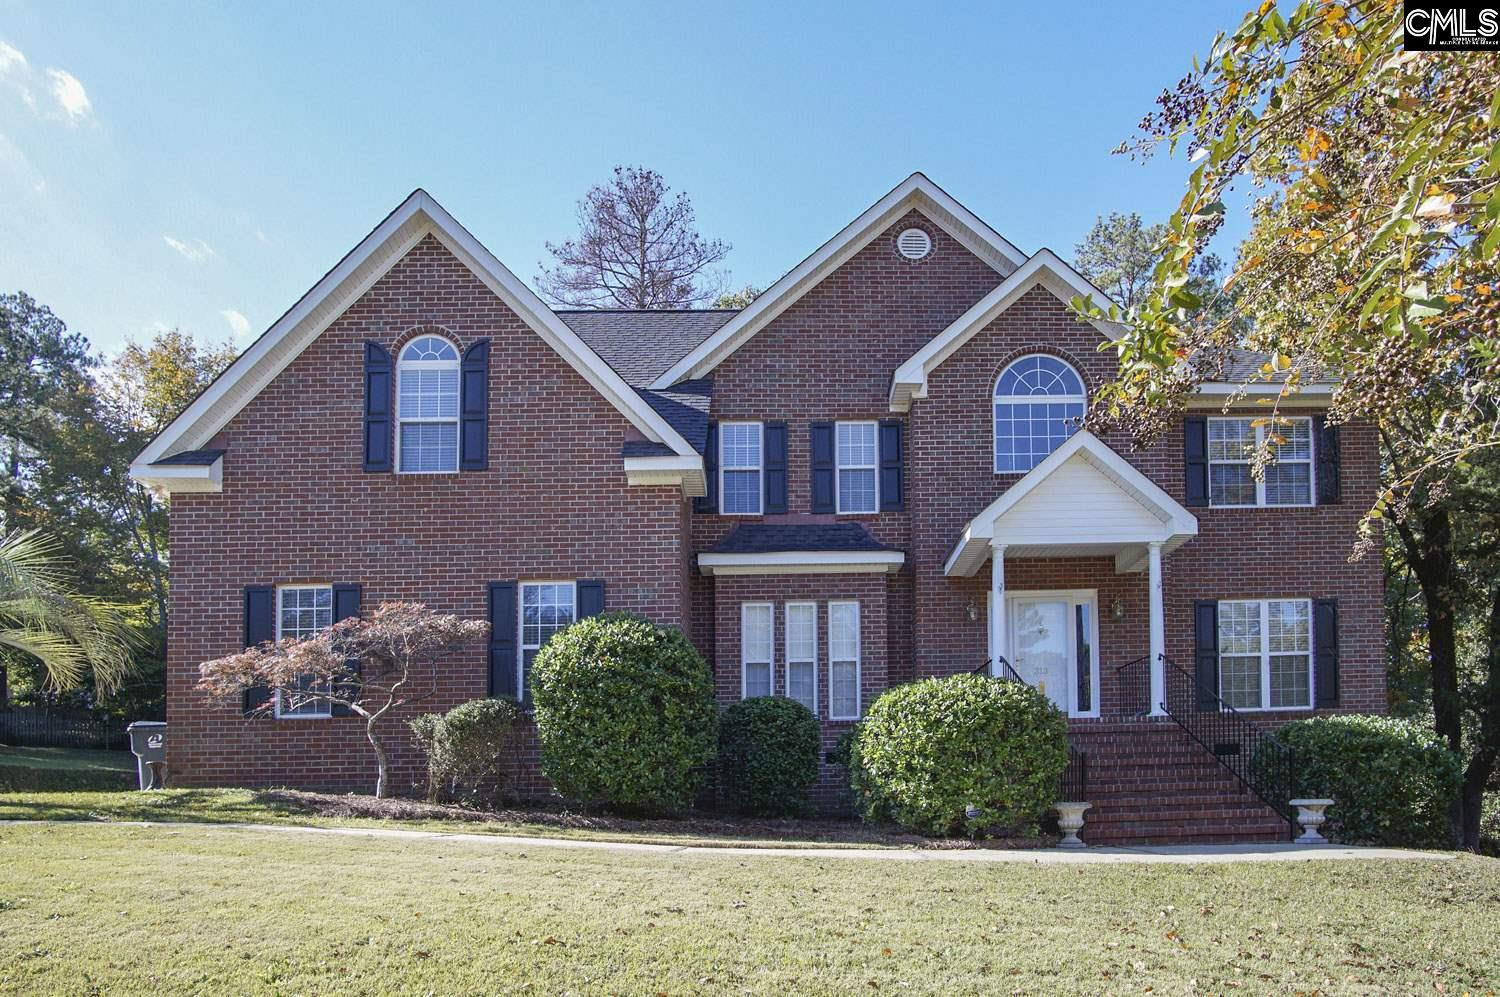 313 Carola Ln Lexington, SC 29072